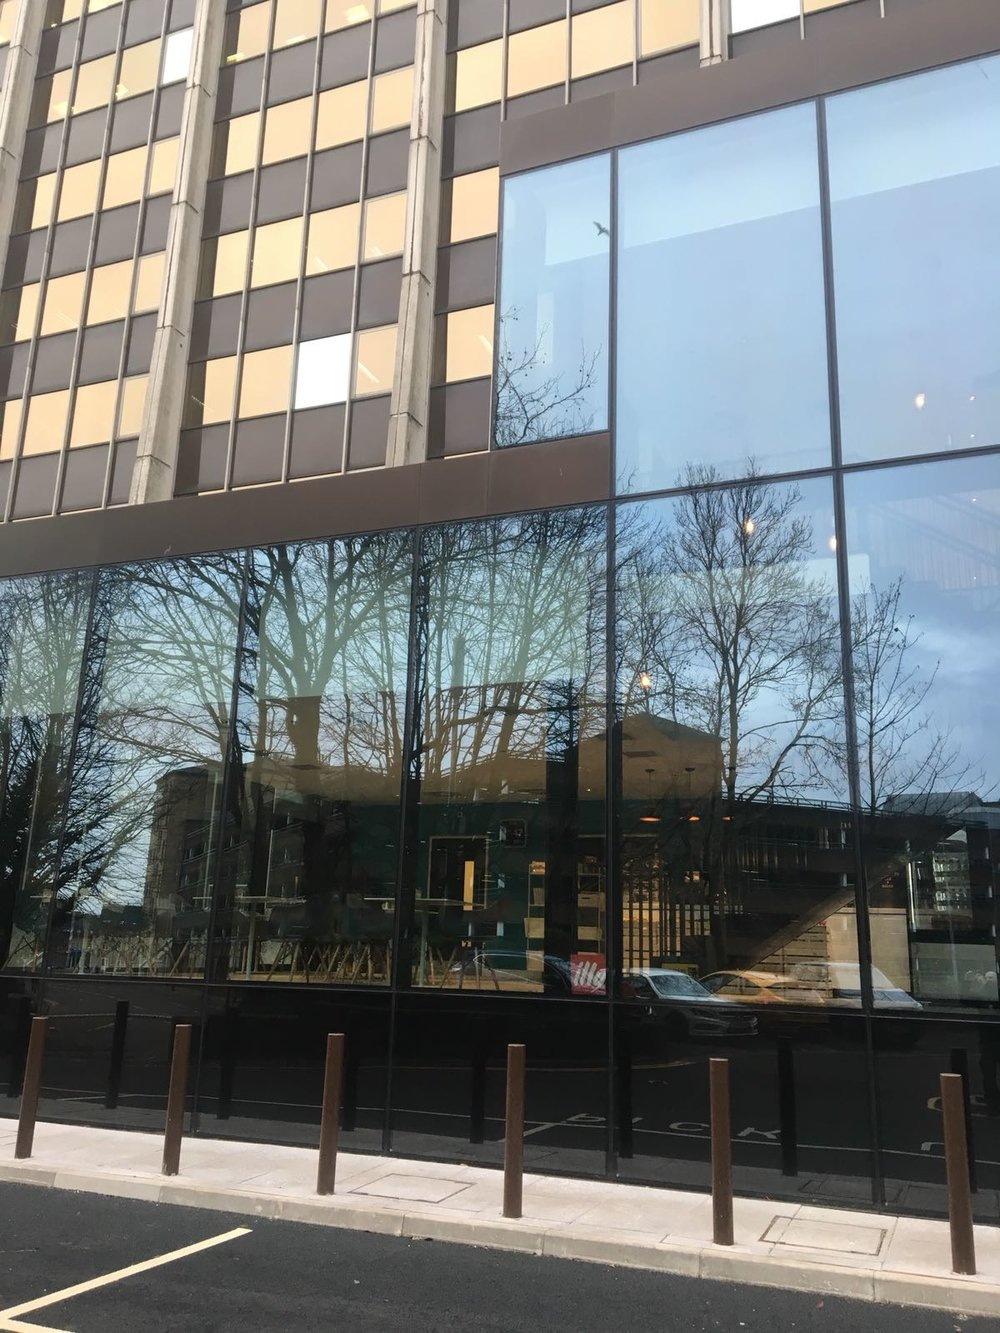 - The structurally glazed curtain wall system is comprised of high performing glass units. The fully glazed entrance foors feature bronze anodized copings above, likewise the internal stair soffet cladding is fabricated from the same bronze anodized aluminium, pressed into panels all designed and installed by Elford, creating a fluent minimalist look whilst giving an impressive focal point to the building.